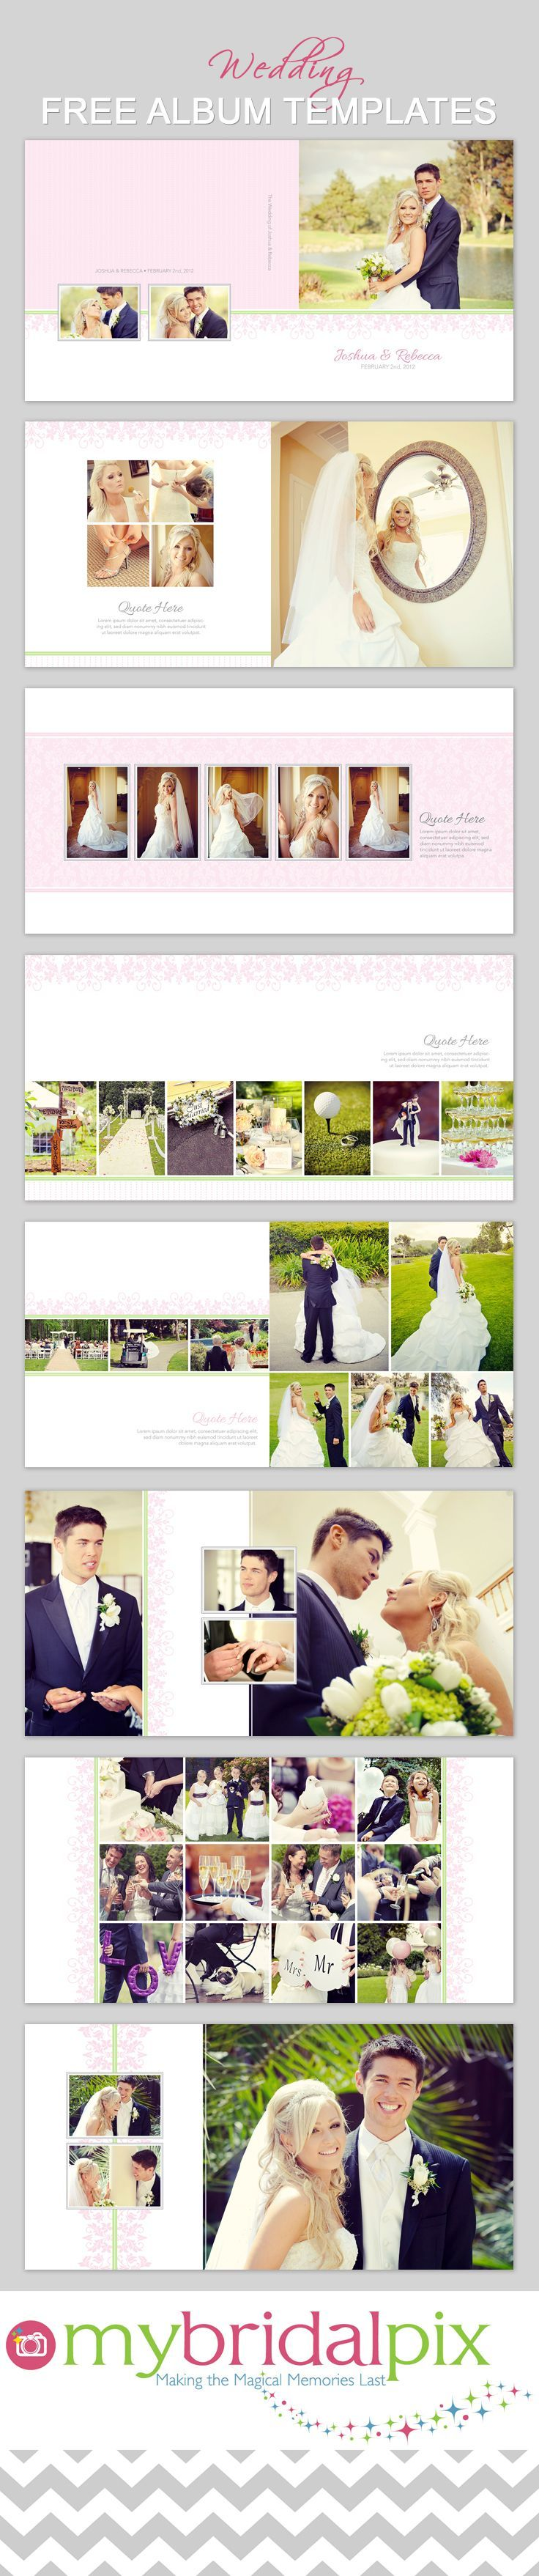 Getting ready wedding photobook ideas pinterest professional getting ready wedding photobook ideas pinterest professional photographer nelson fc and album solutioingenieria Image collections